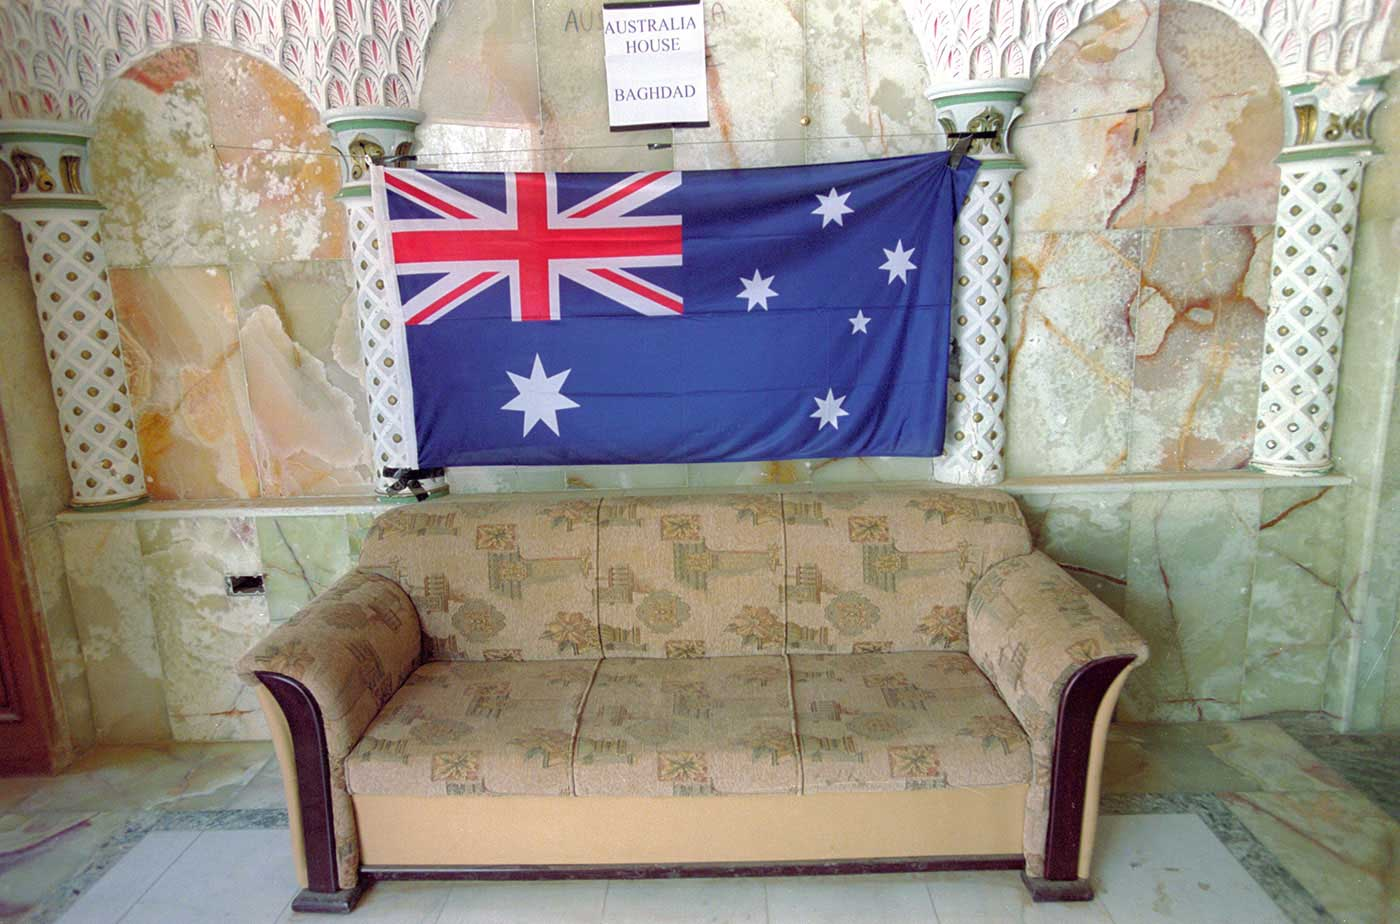 A colour photograph of the Australian flag hanging above a three-seater lounge chair. Marble-look panels and ornate columns can be seen either side of the flag. A small printed sign'Australia House, Baghdad', sits above the flag. - click to view larger image